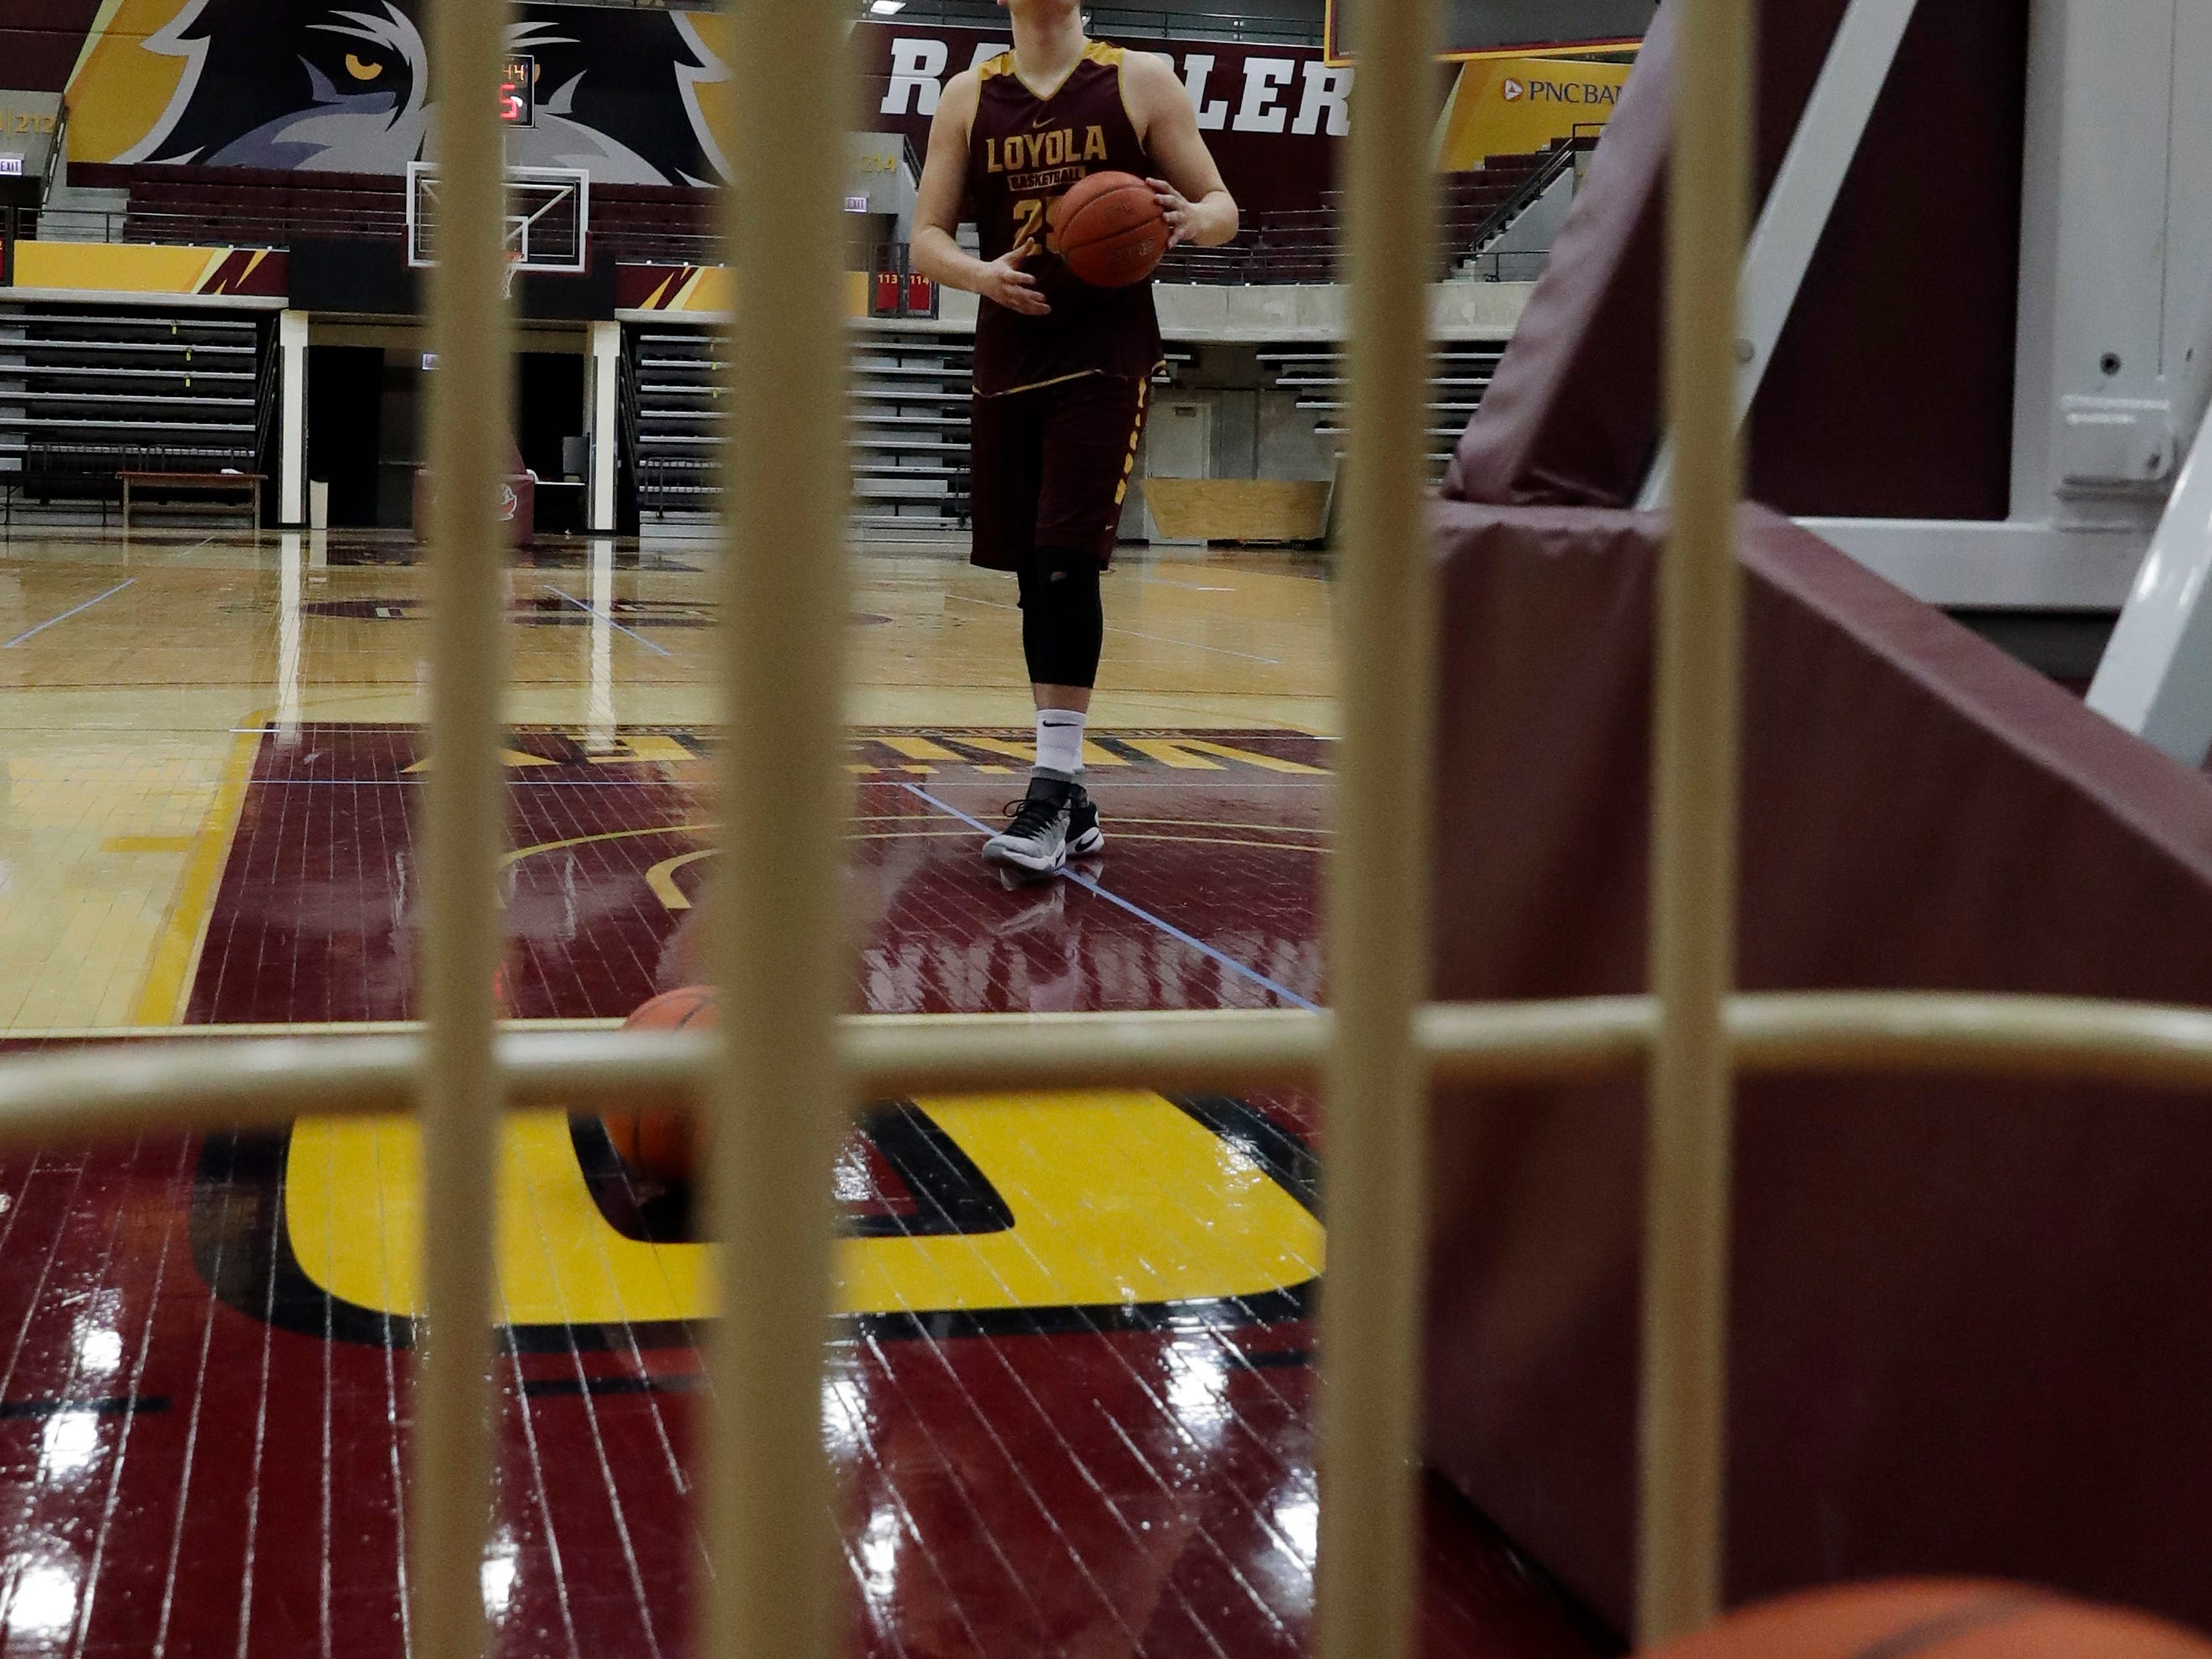 Loyola center Cameron Krutwig looks to the basket during NCAA college basketball practice in Chicago, Friday, March 9, 2018. Loyola locks up 1st March Madness appearance in 33 years. (AP Photo/Nam Y. Huh)